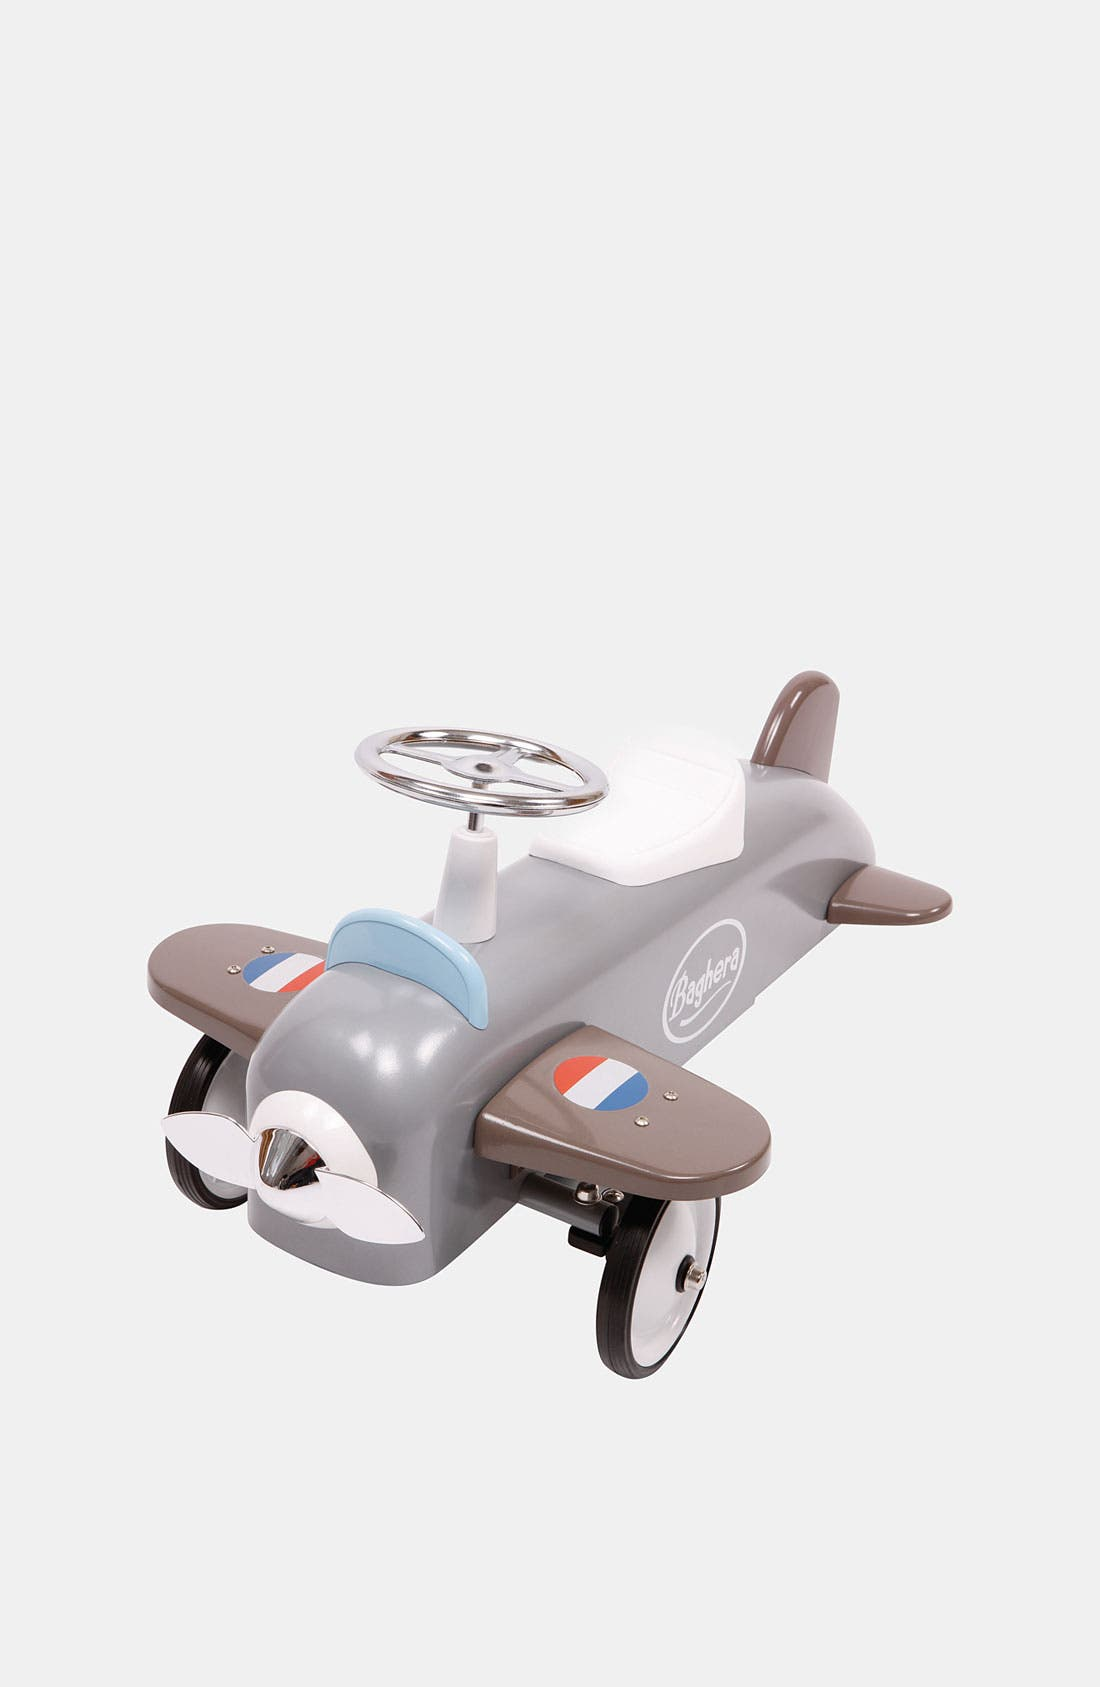 Alternate Image 1 Selected - Baghera 'Speedster' Ride-On Plane (Toddler)